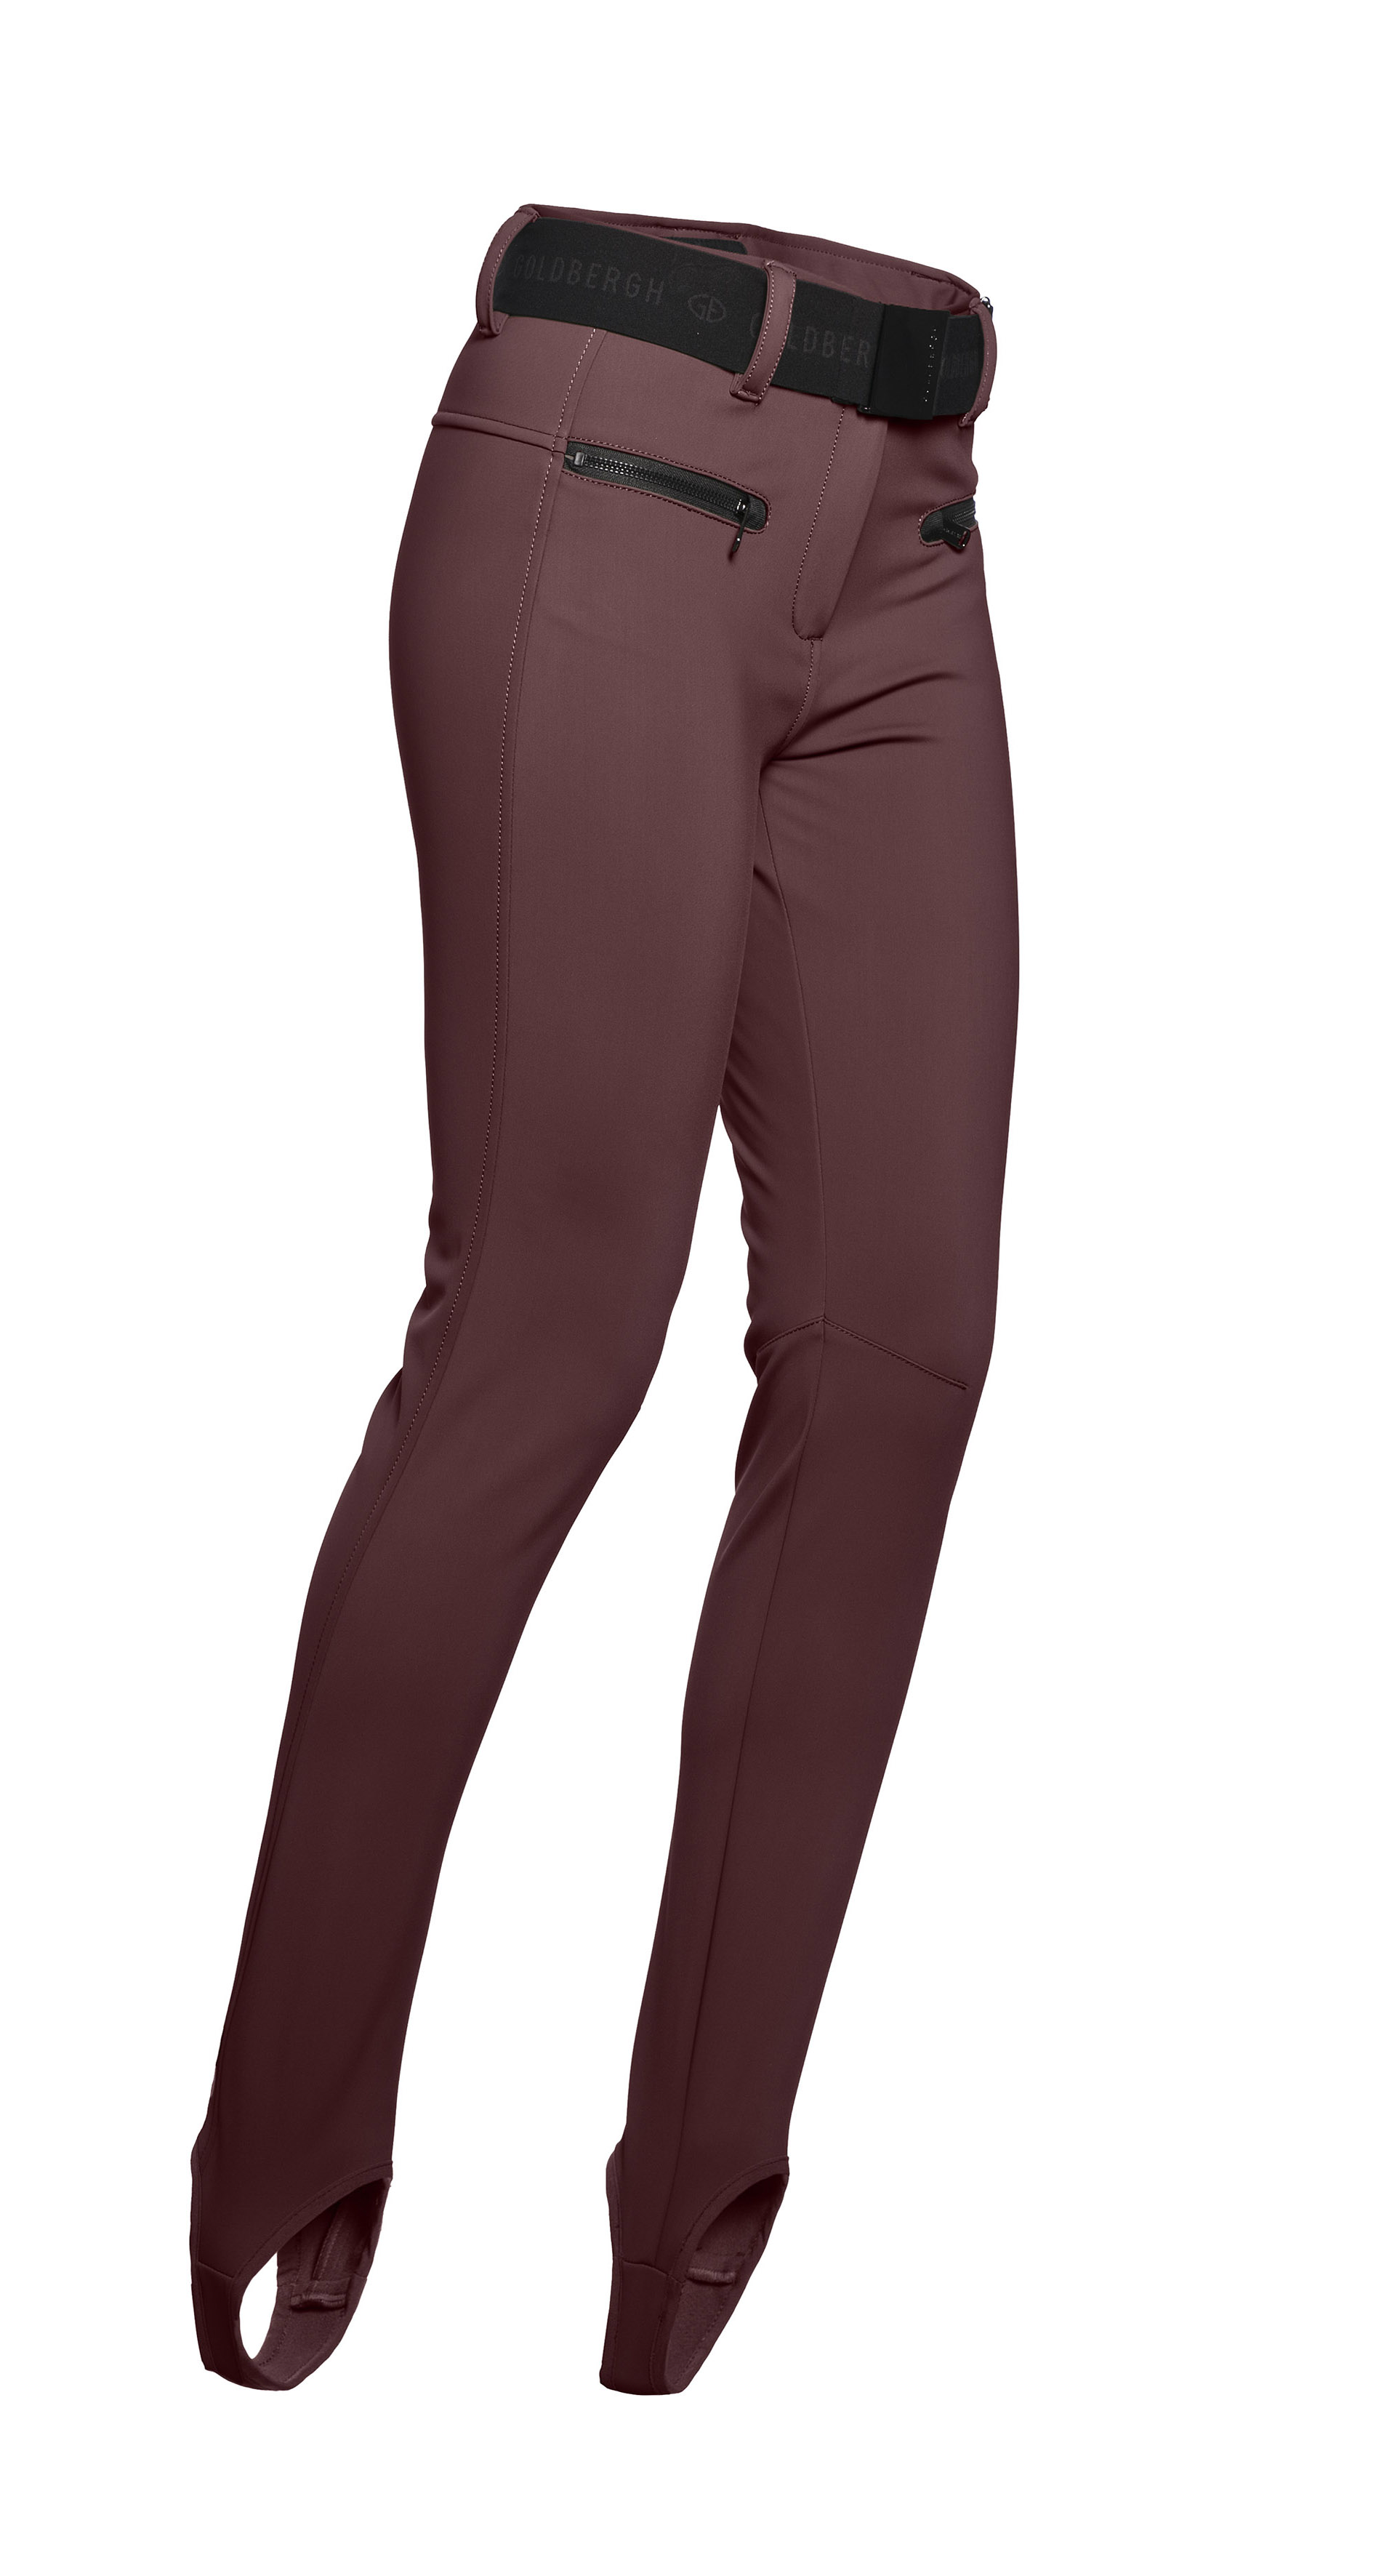 Goldbergh Paris stirrup ski pant